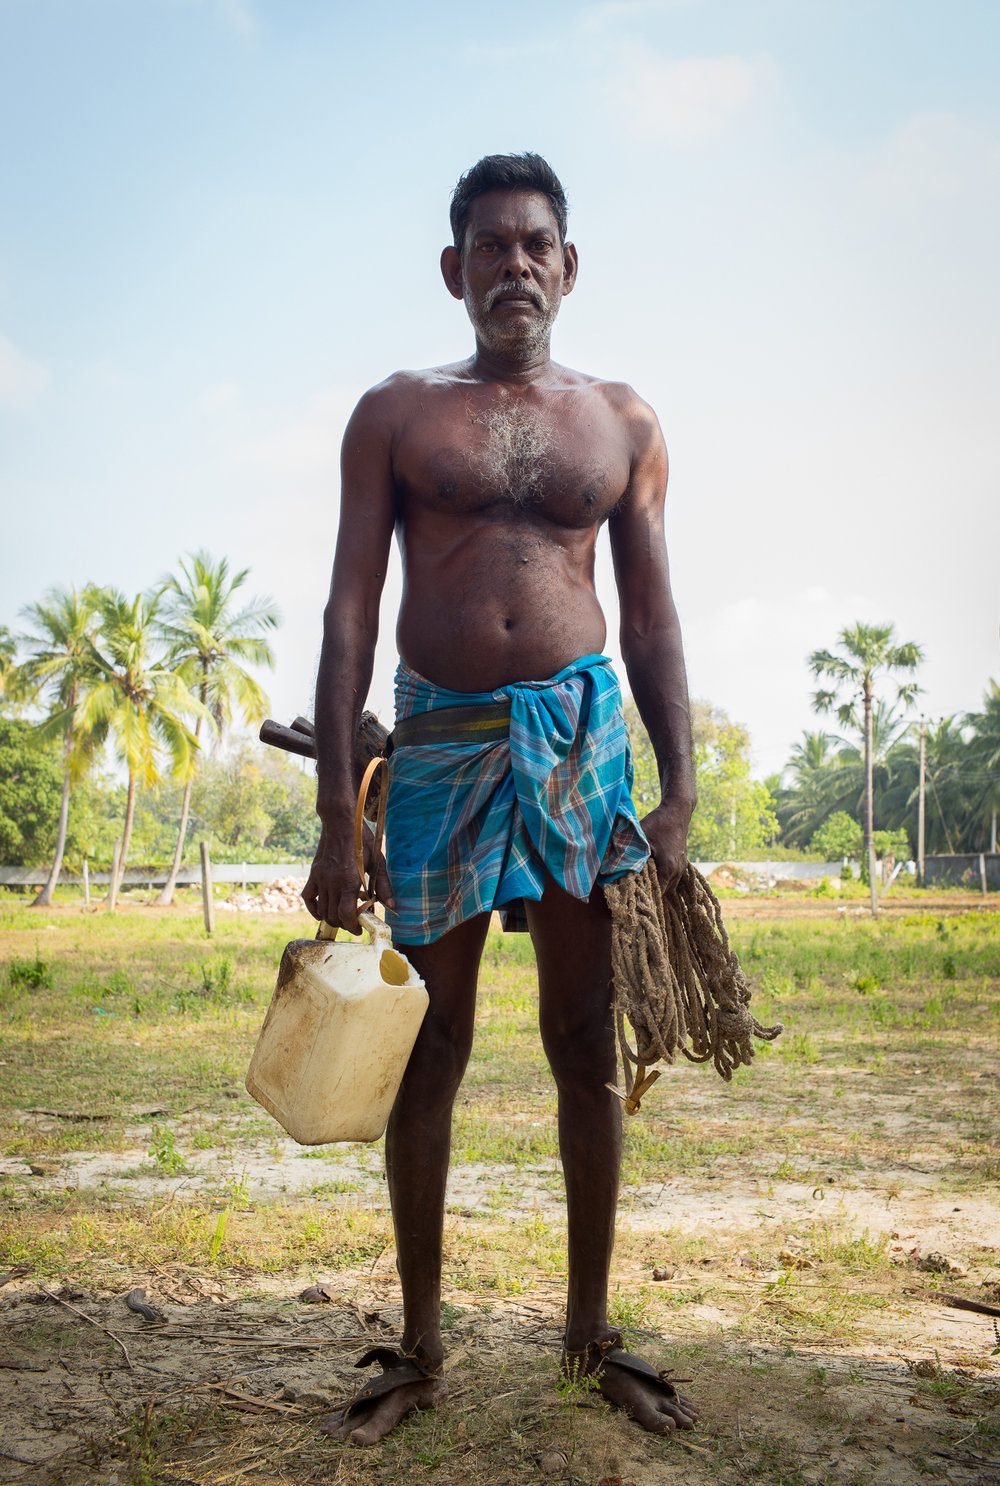 A toddy tapper outside the village of Navaly near Jaffna, northern Sri Lanka.